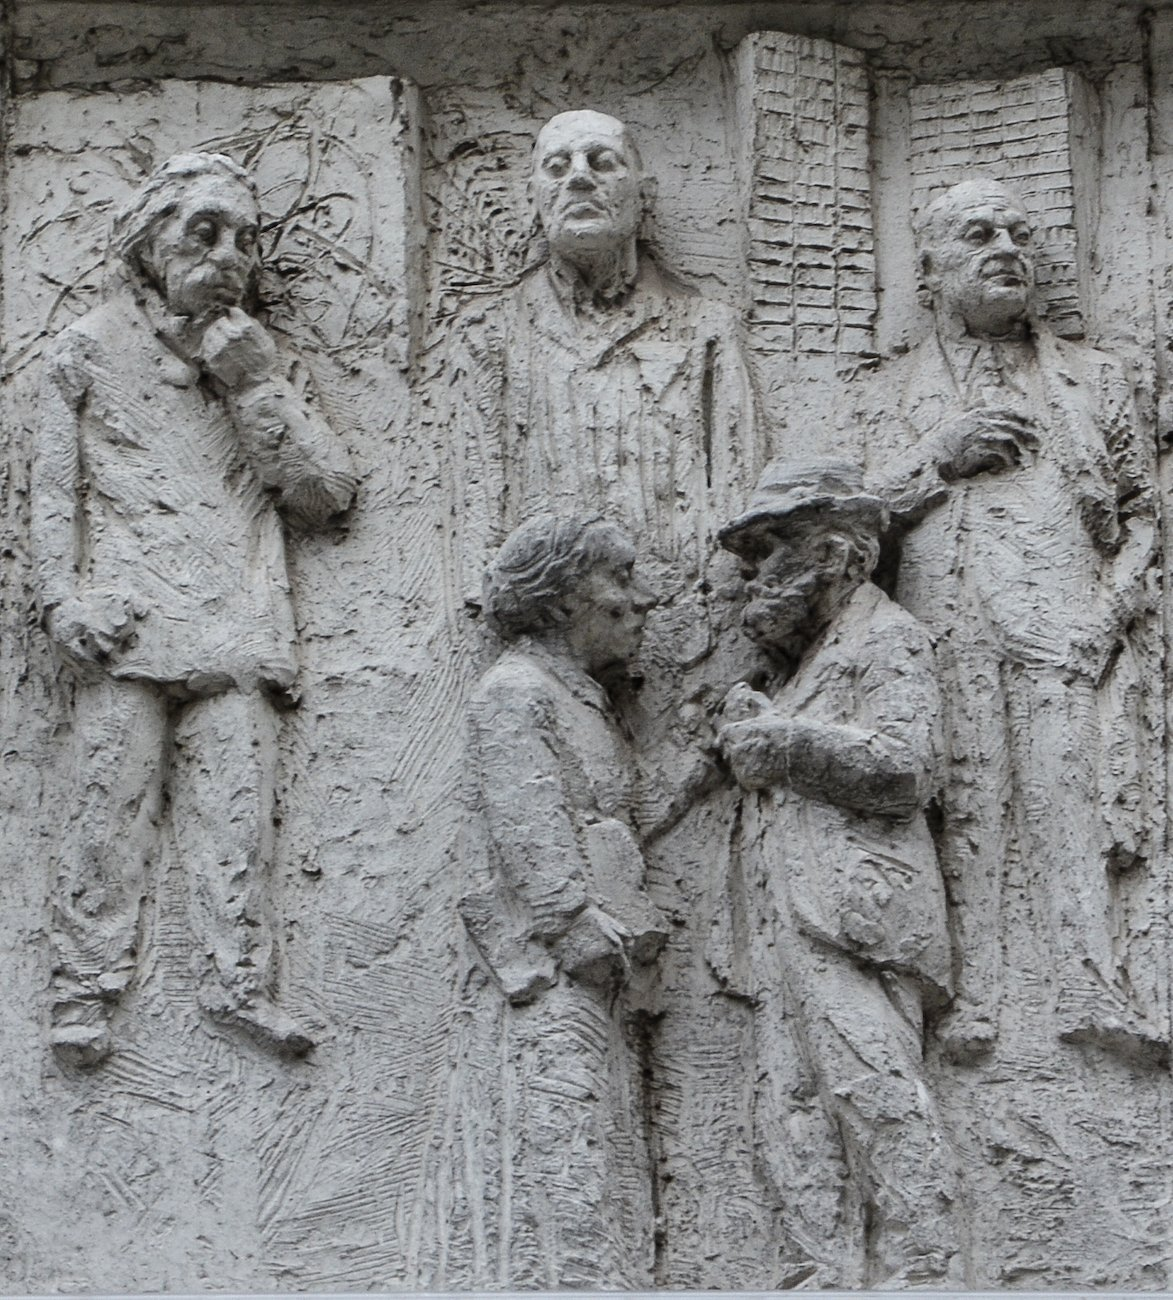 albert einstein fries der sozialistischen Geschichte Berlins Gerhard Thieme socialist history of berlin relief frieze berlin germany socialsim communism east berlin east germany ddr